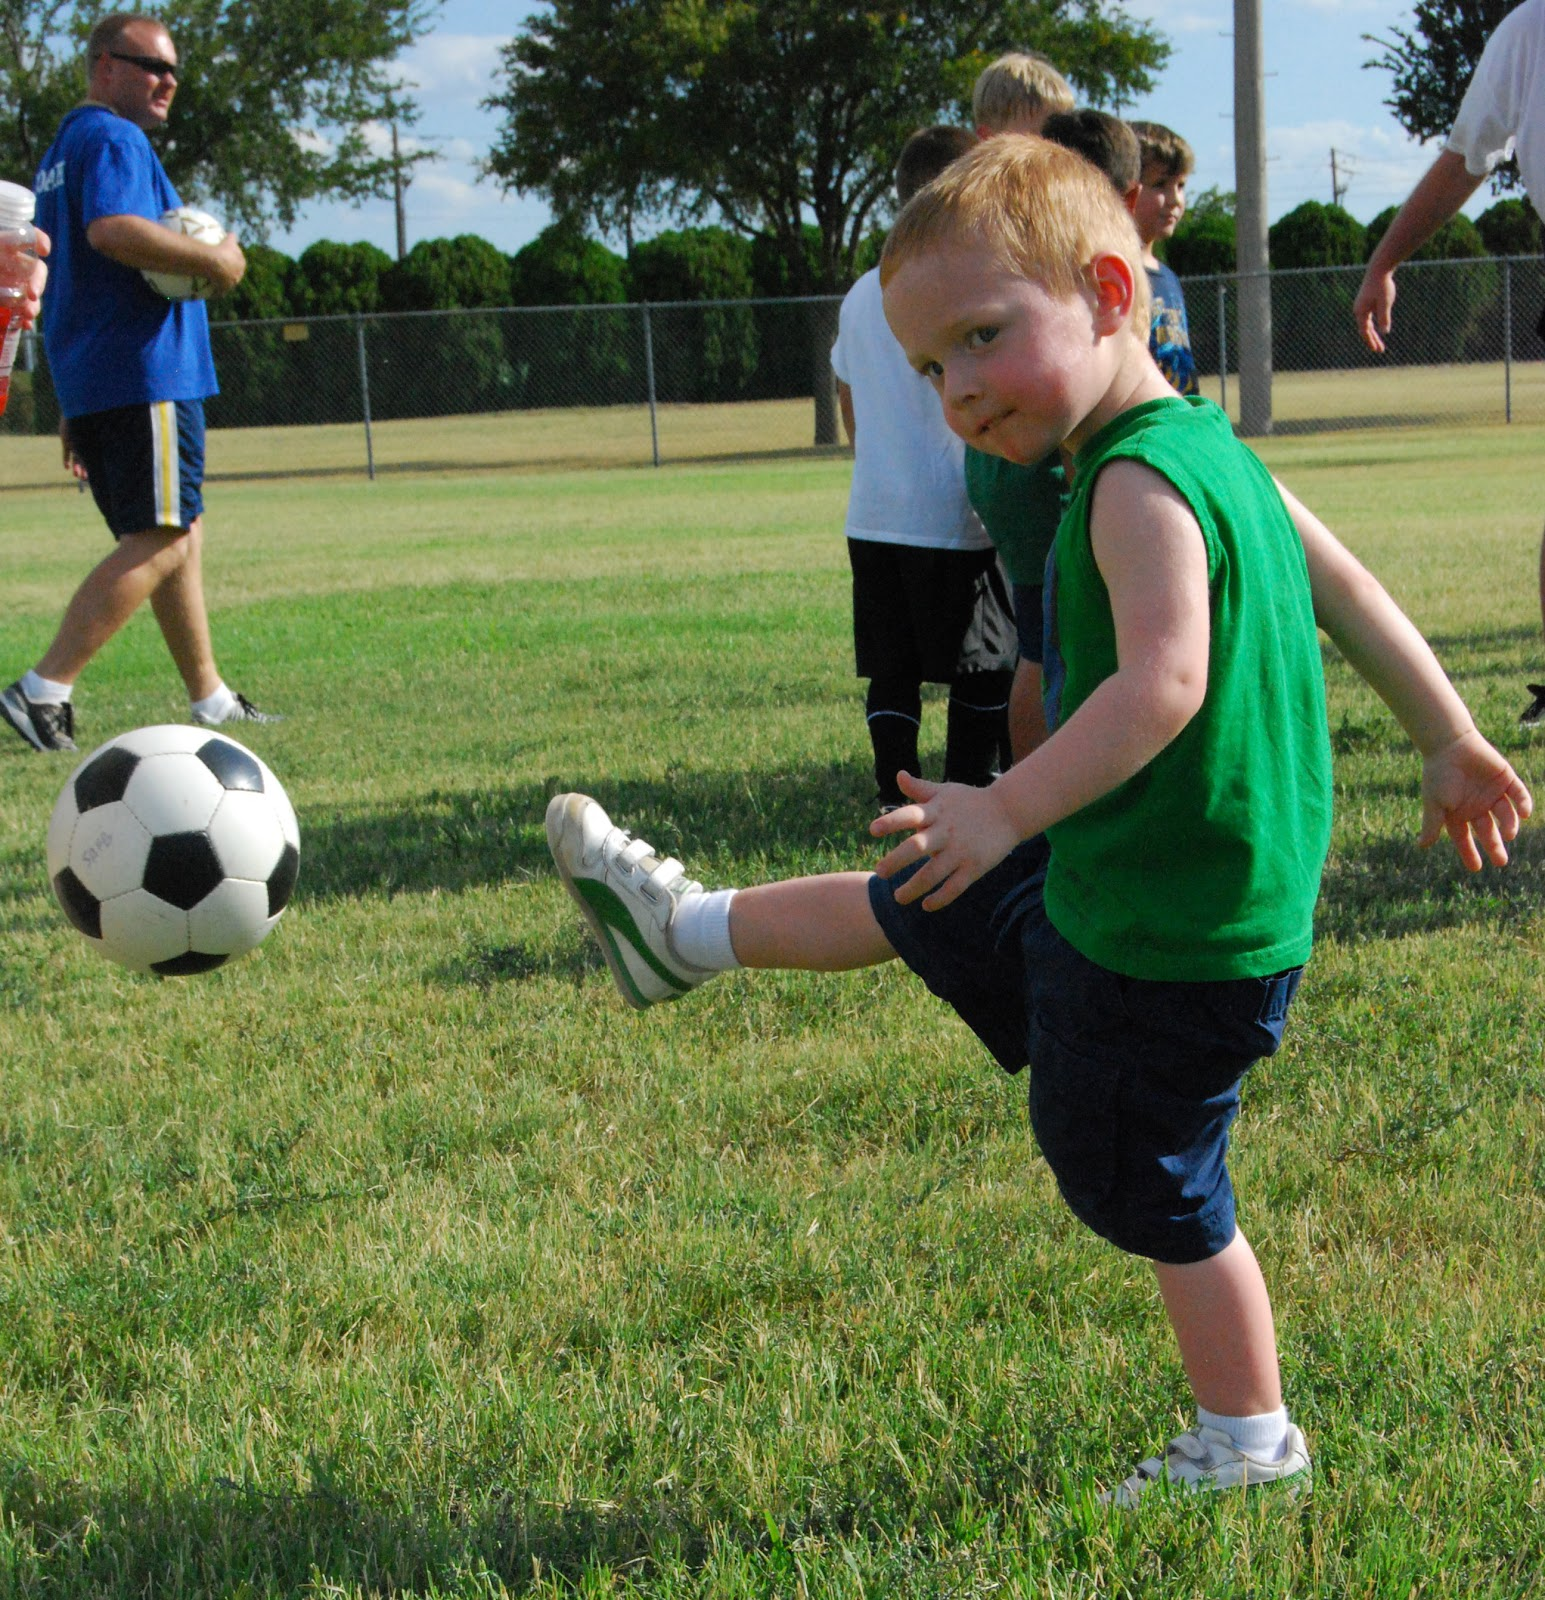 Kid kicking a soccer ball (Soccer for 3 and 4-year-olds)